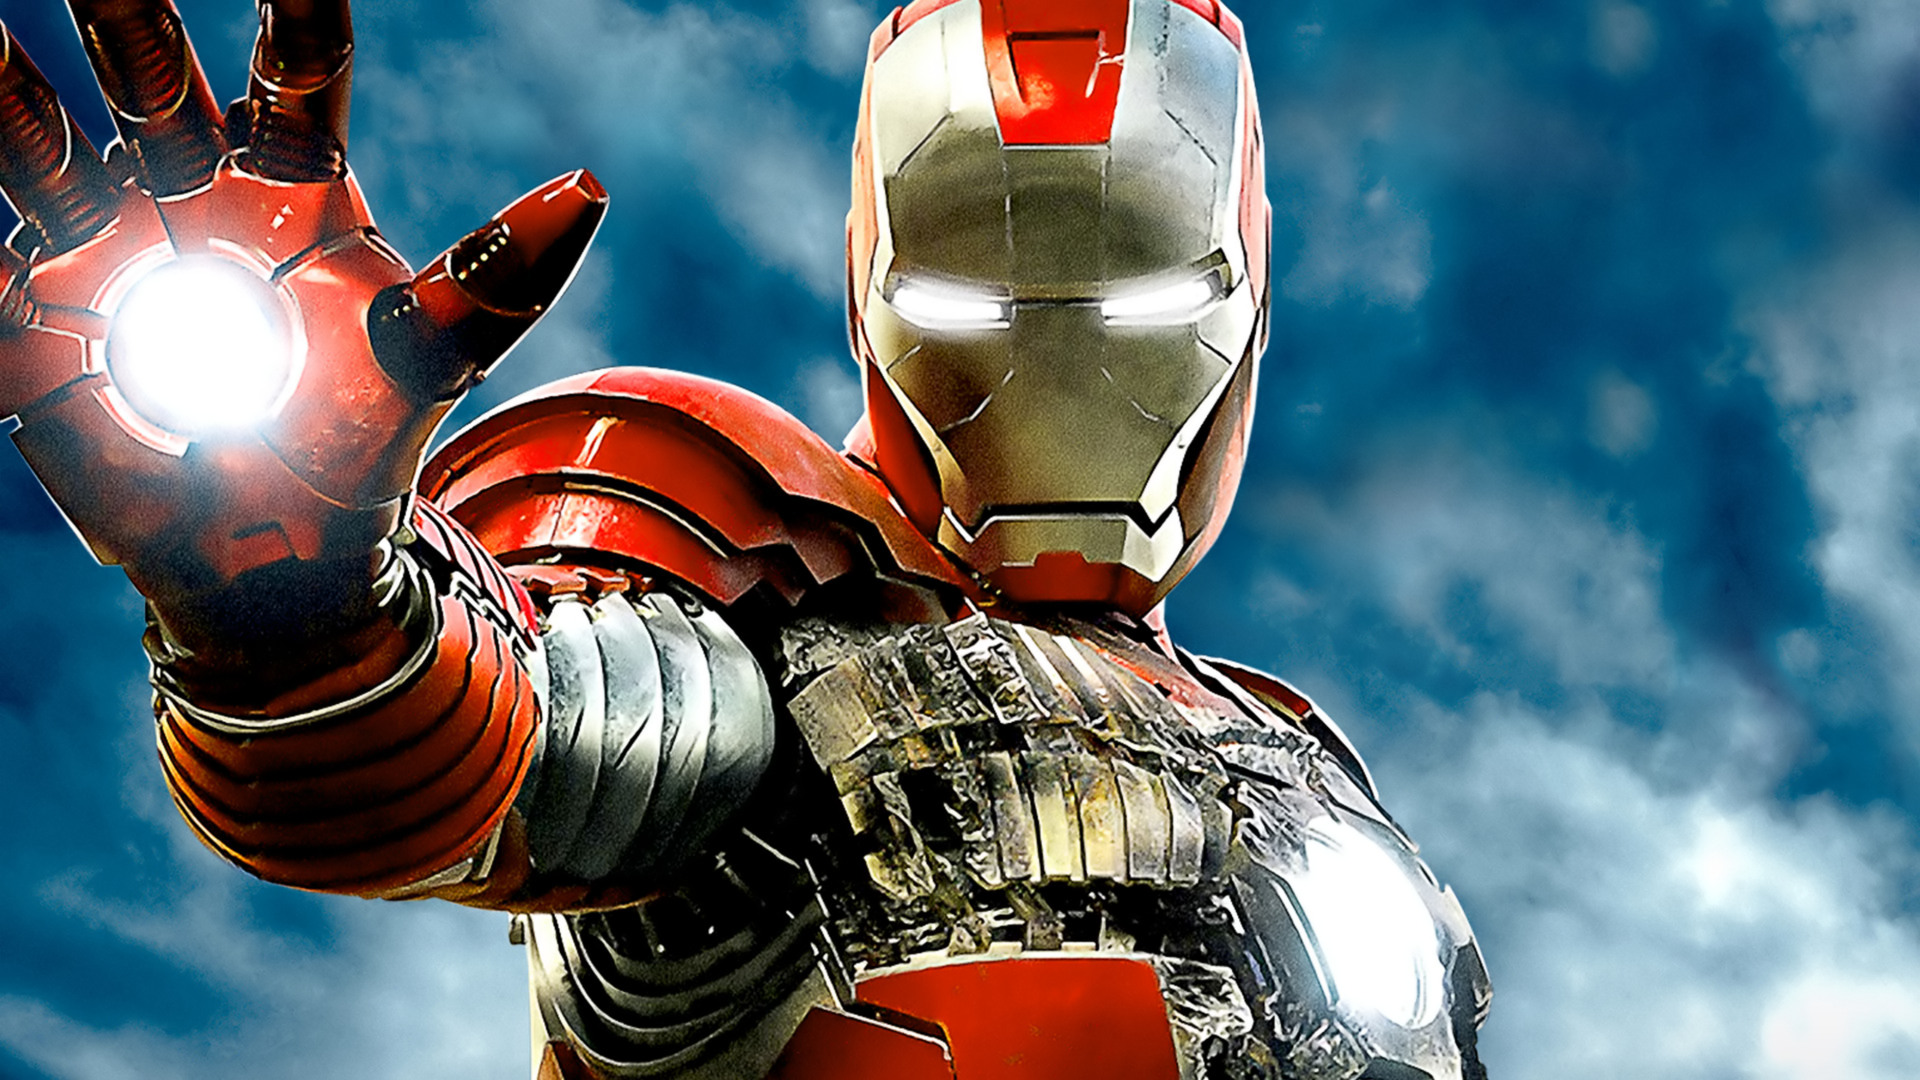 Iron man 2 wallpapers pictures images - Image de iron man ...